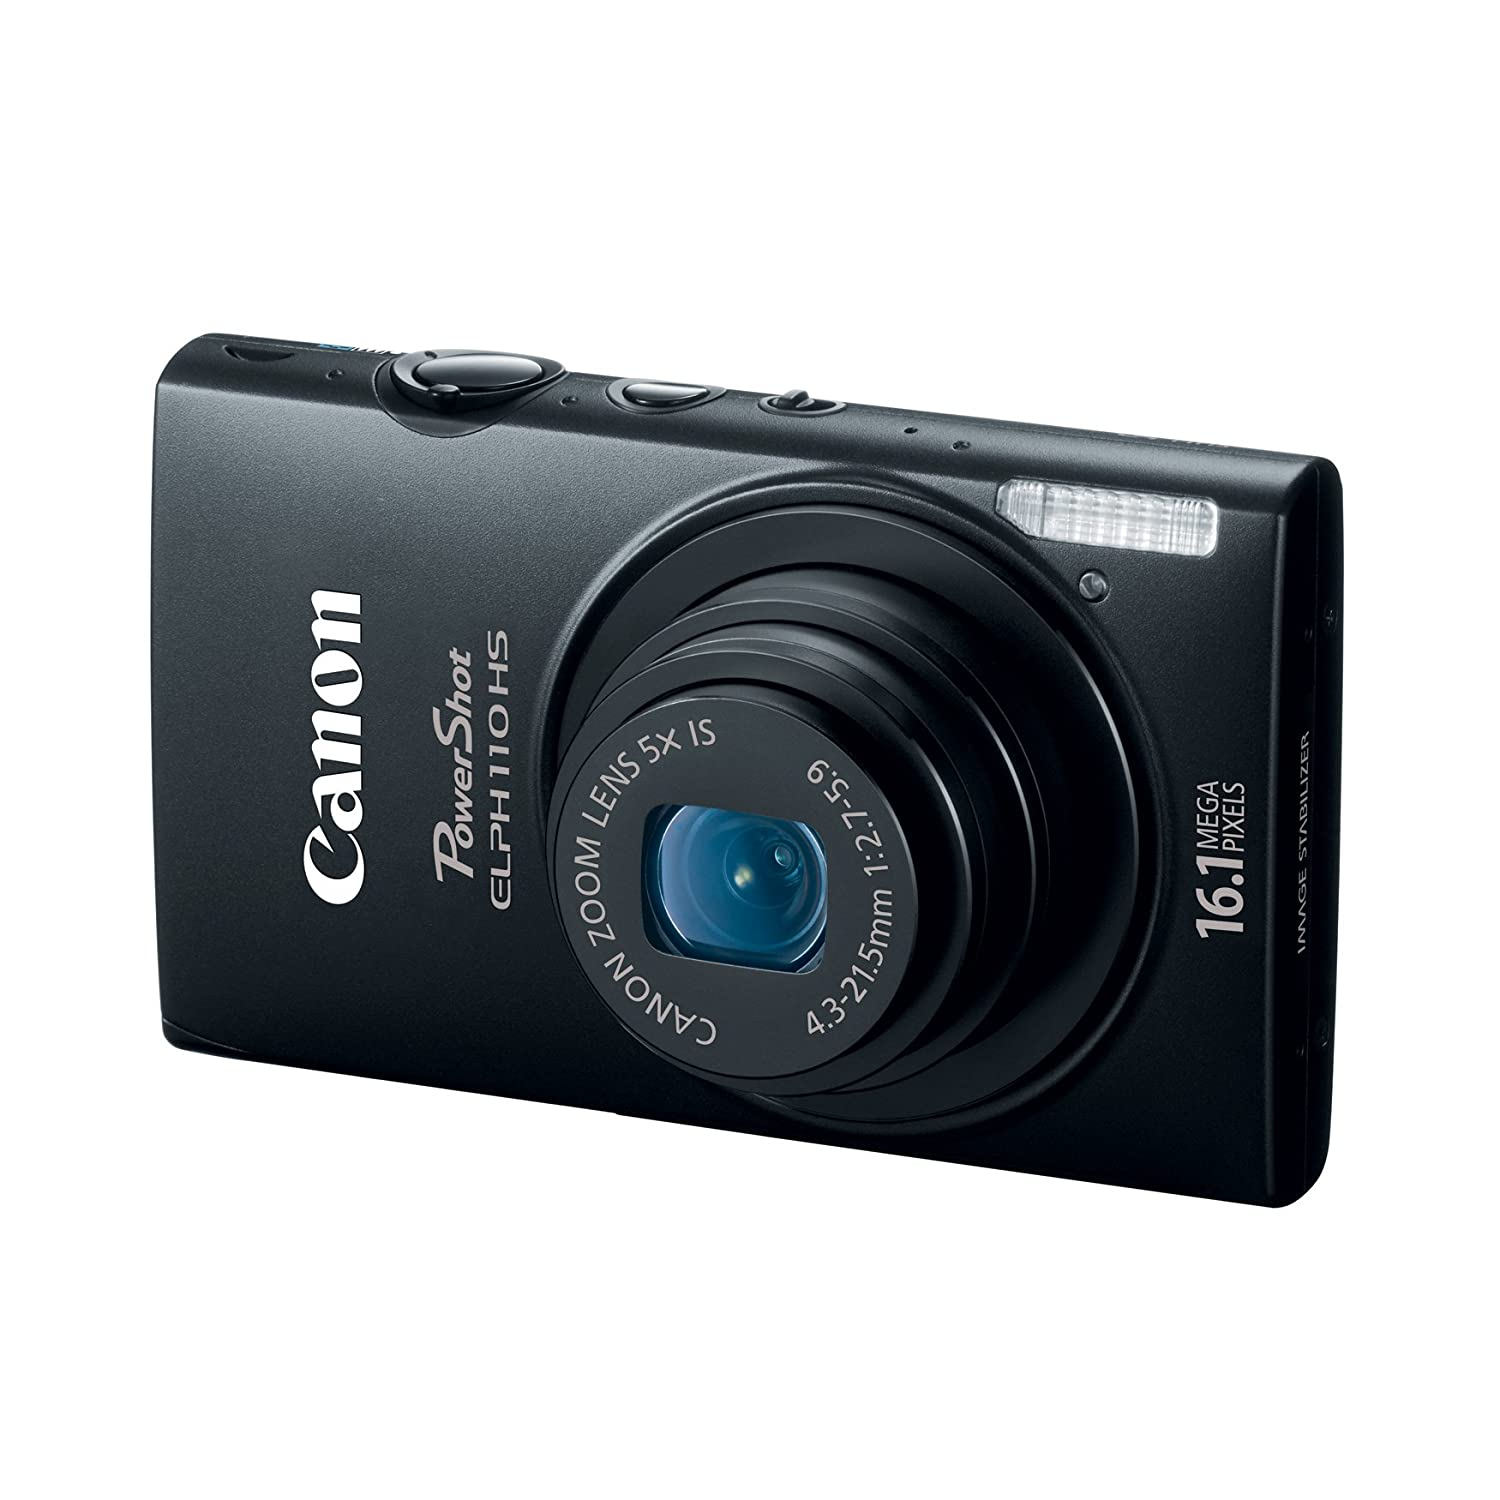 Check-the-Best-Deal-for-Canon-PowerShot-ELPH-110-HS-16.1-MP-CMOS-Digital-Camera-with-5x-Wide-Angle-Optical-Image-Stabilized-Zoom-Lens-and-Full-1080p-HD-Video